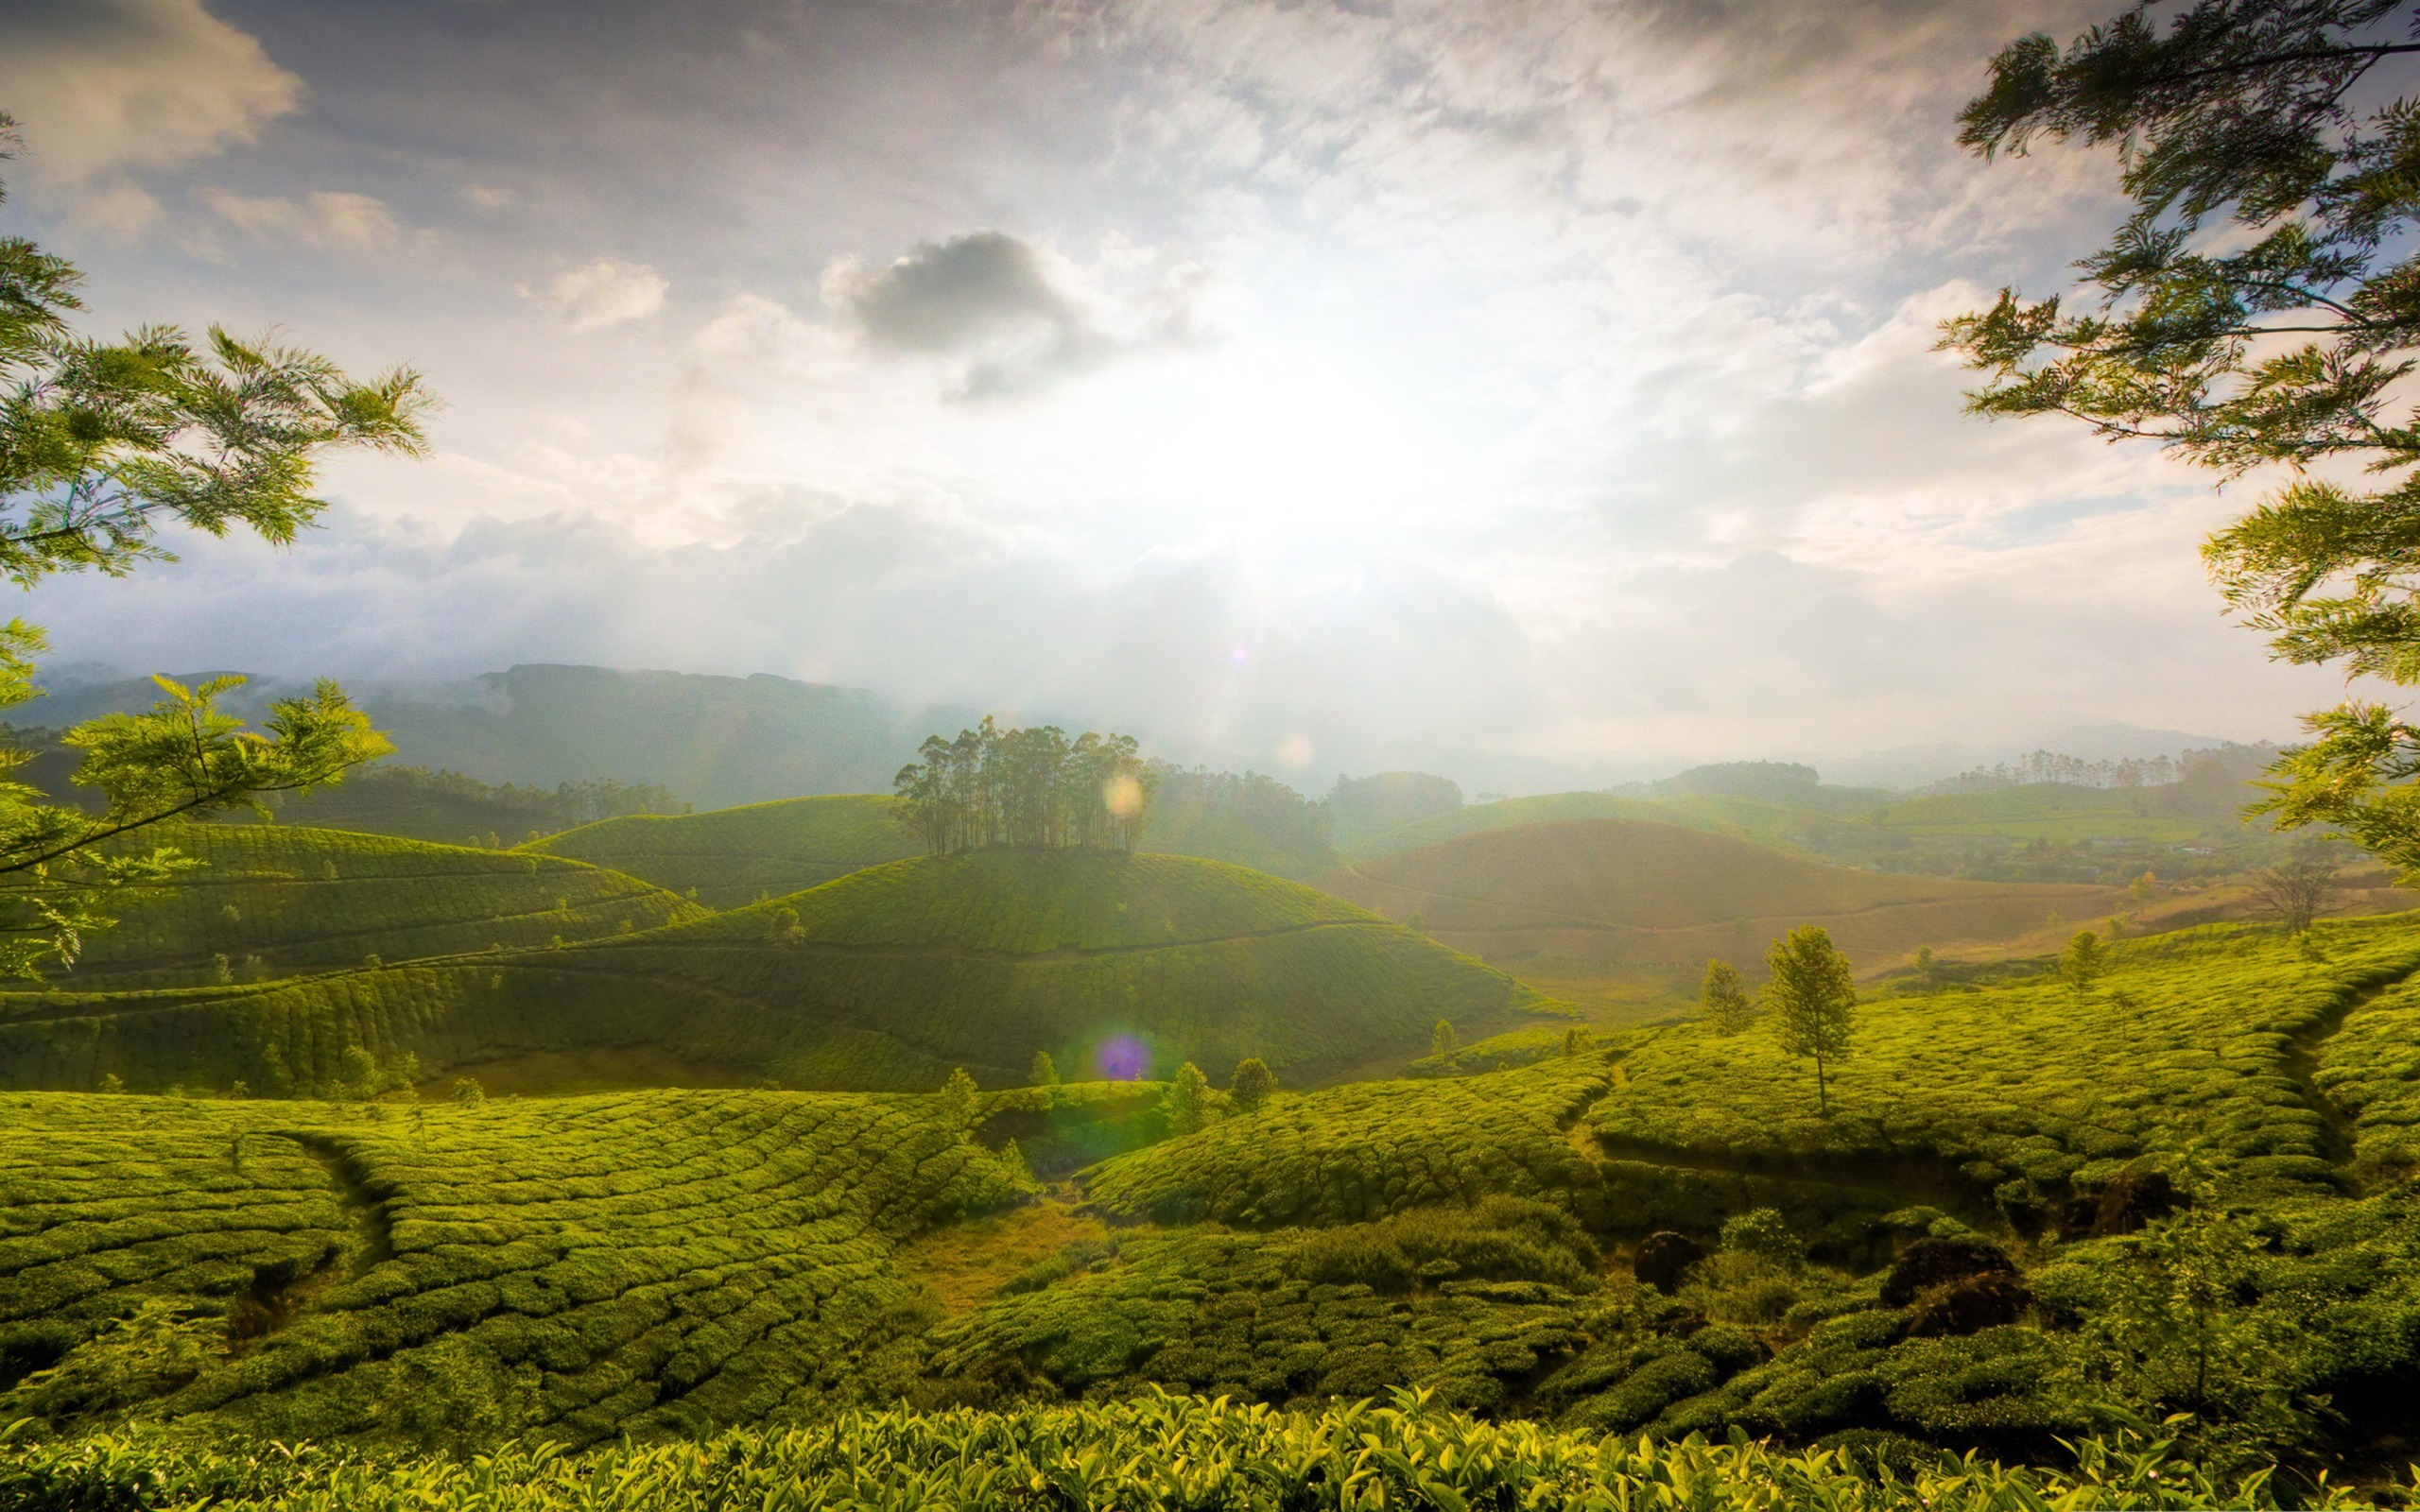 Munnar hill india beautiful natural scenery desktop wallpapers landscape munnar hill india beautiful natural scenery de munnarhillindia beautifulnaturalscenerydesktopwallpapers voltagebd Image collections